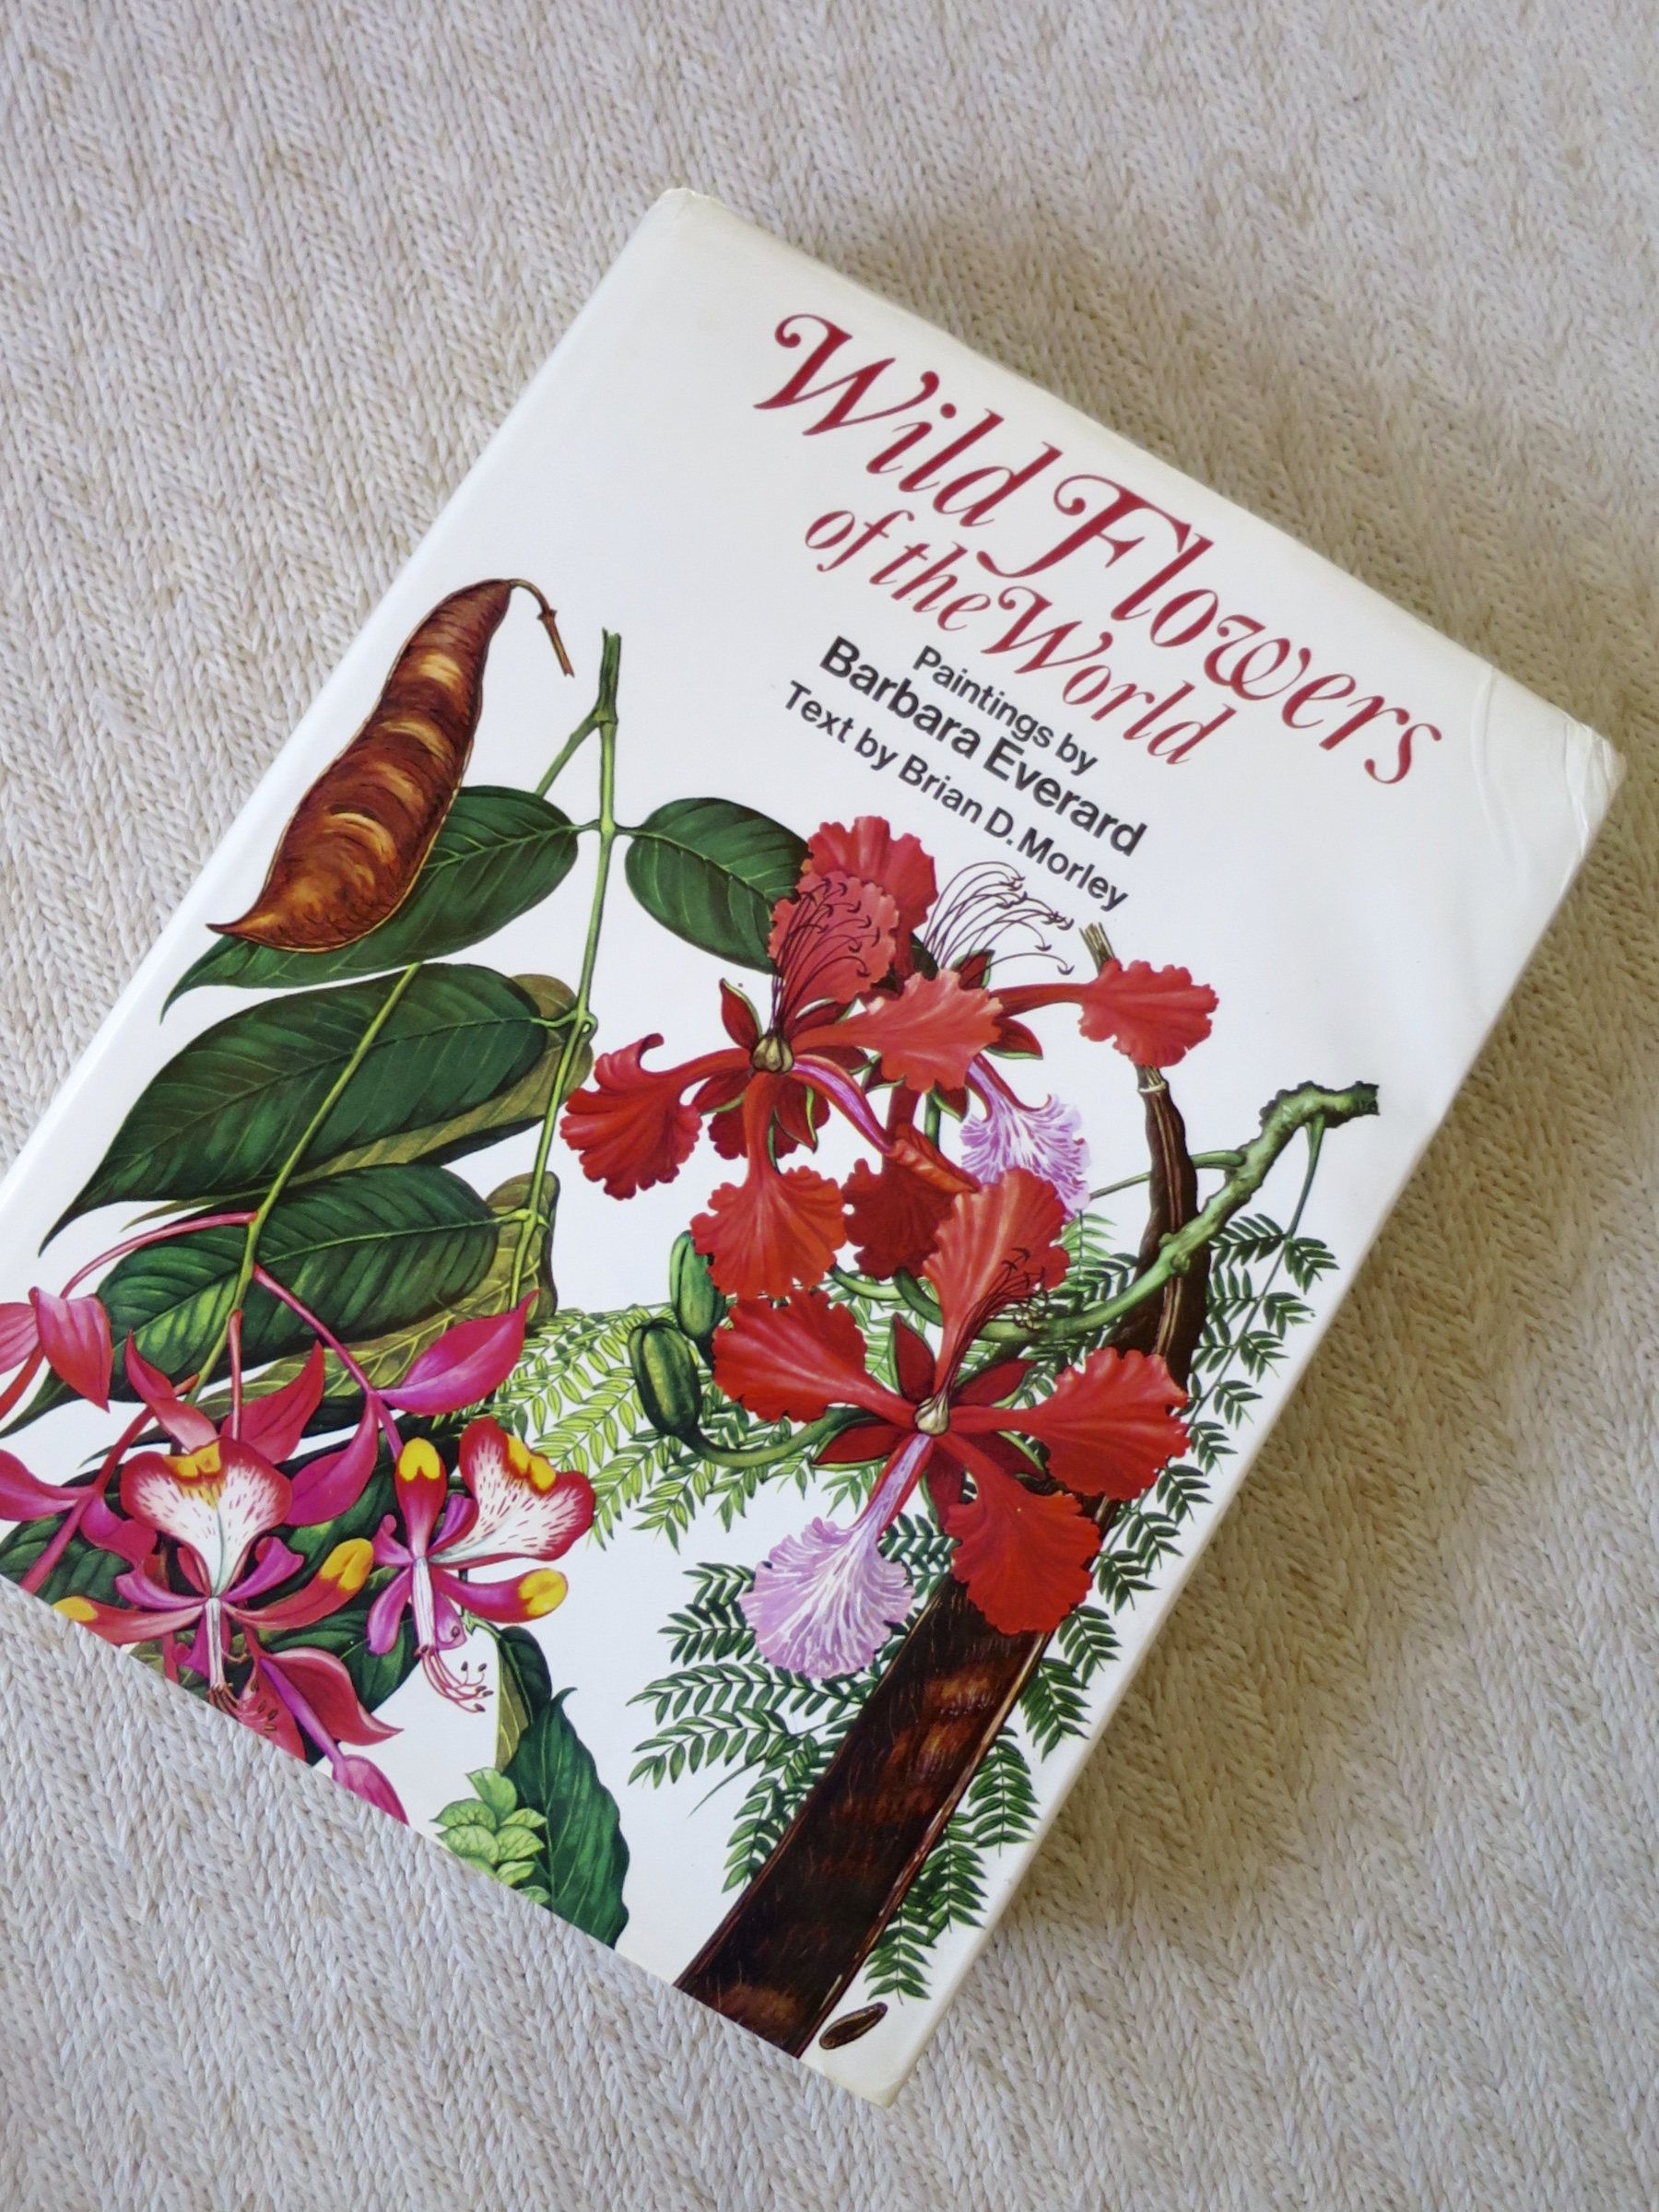 Wild Flowers Of The World Paintings Book By Barbara Everard Brian Morley Text 1979 Color Plates Extensive List Details Painted Books Book Art Vintage Postcards